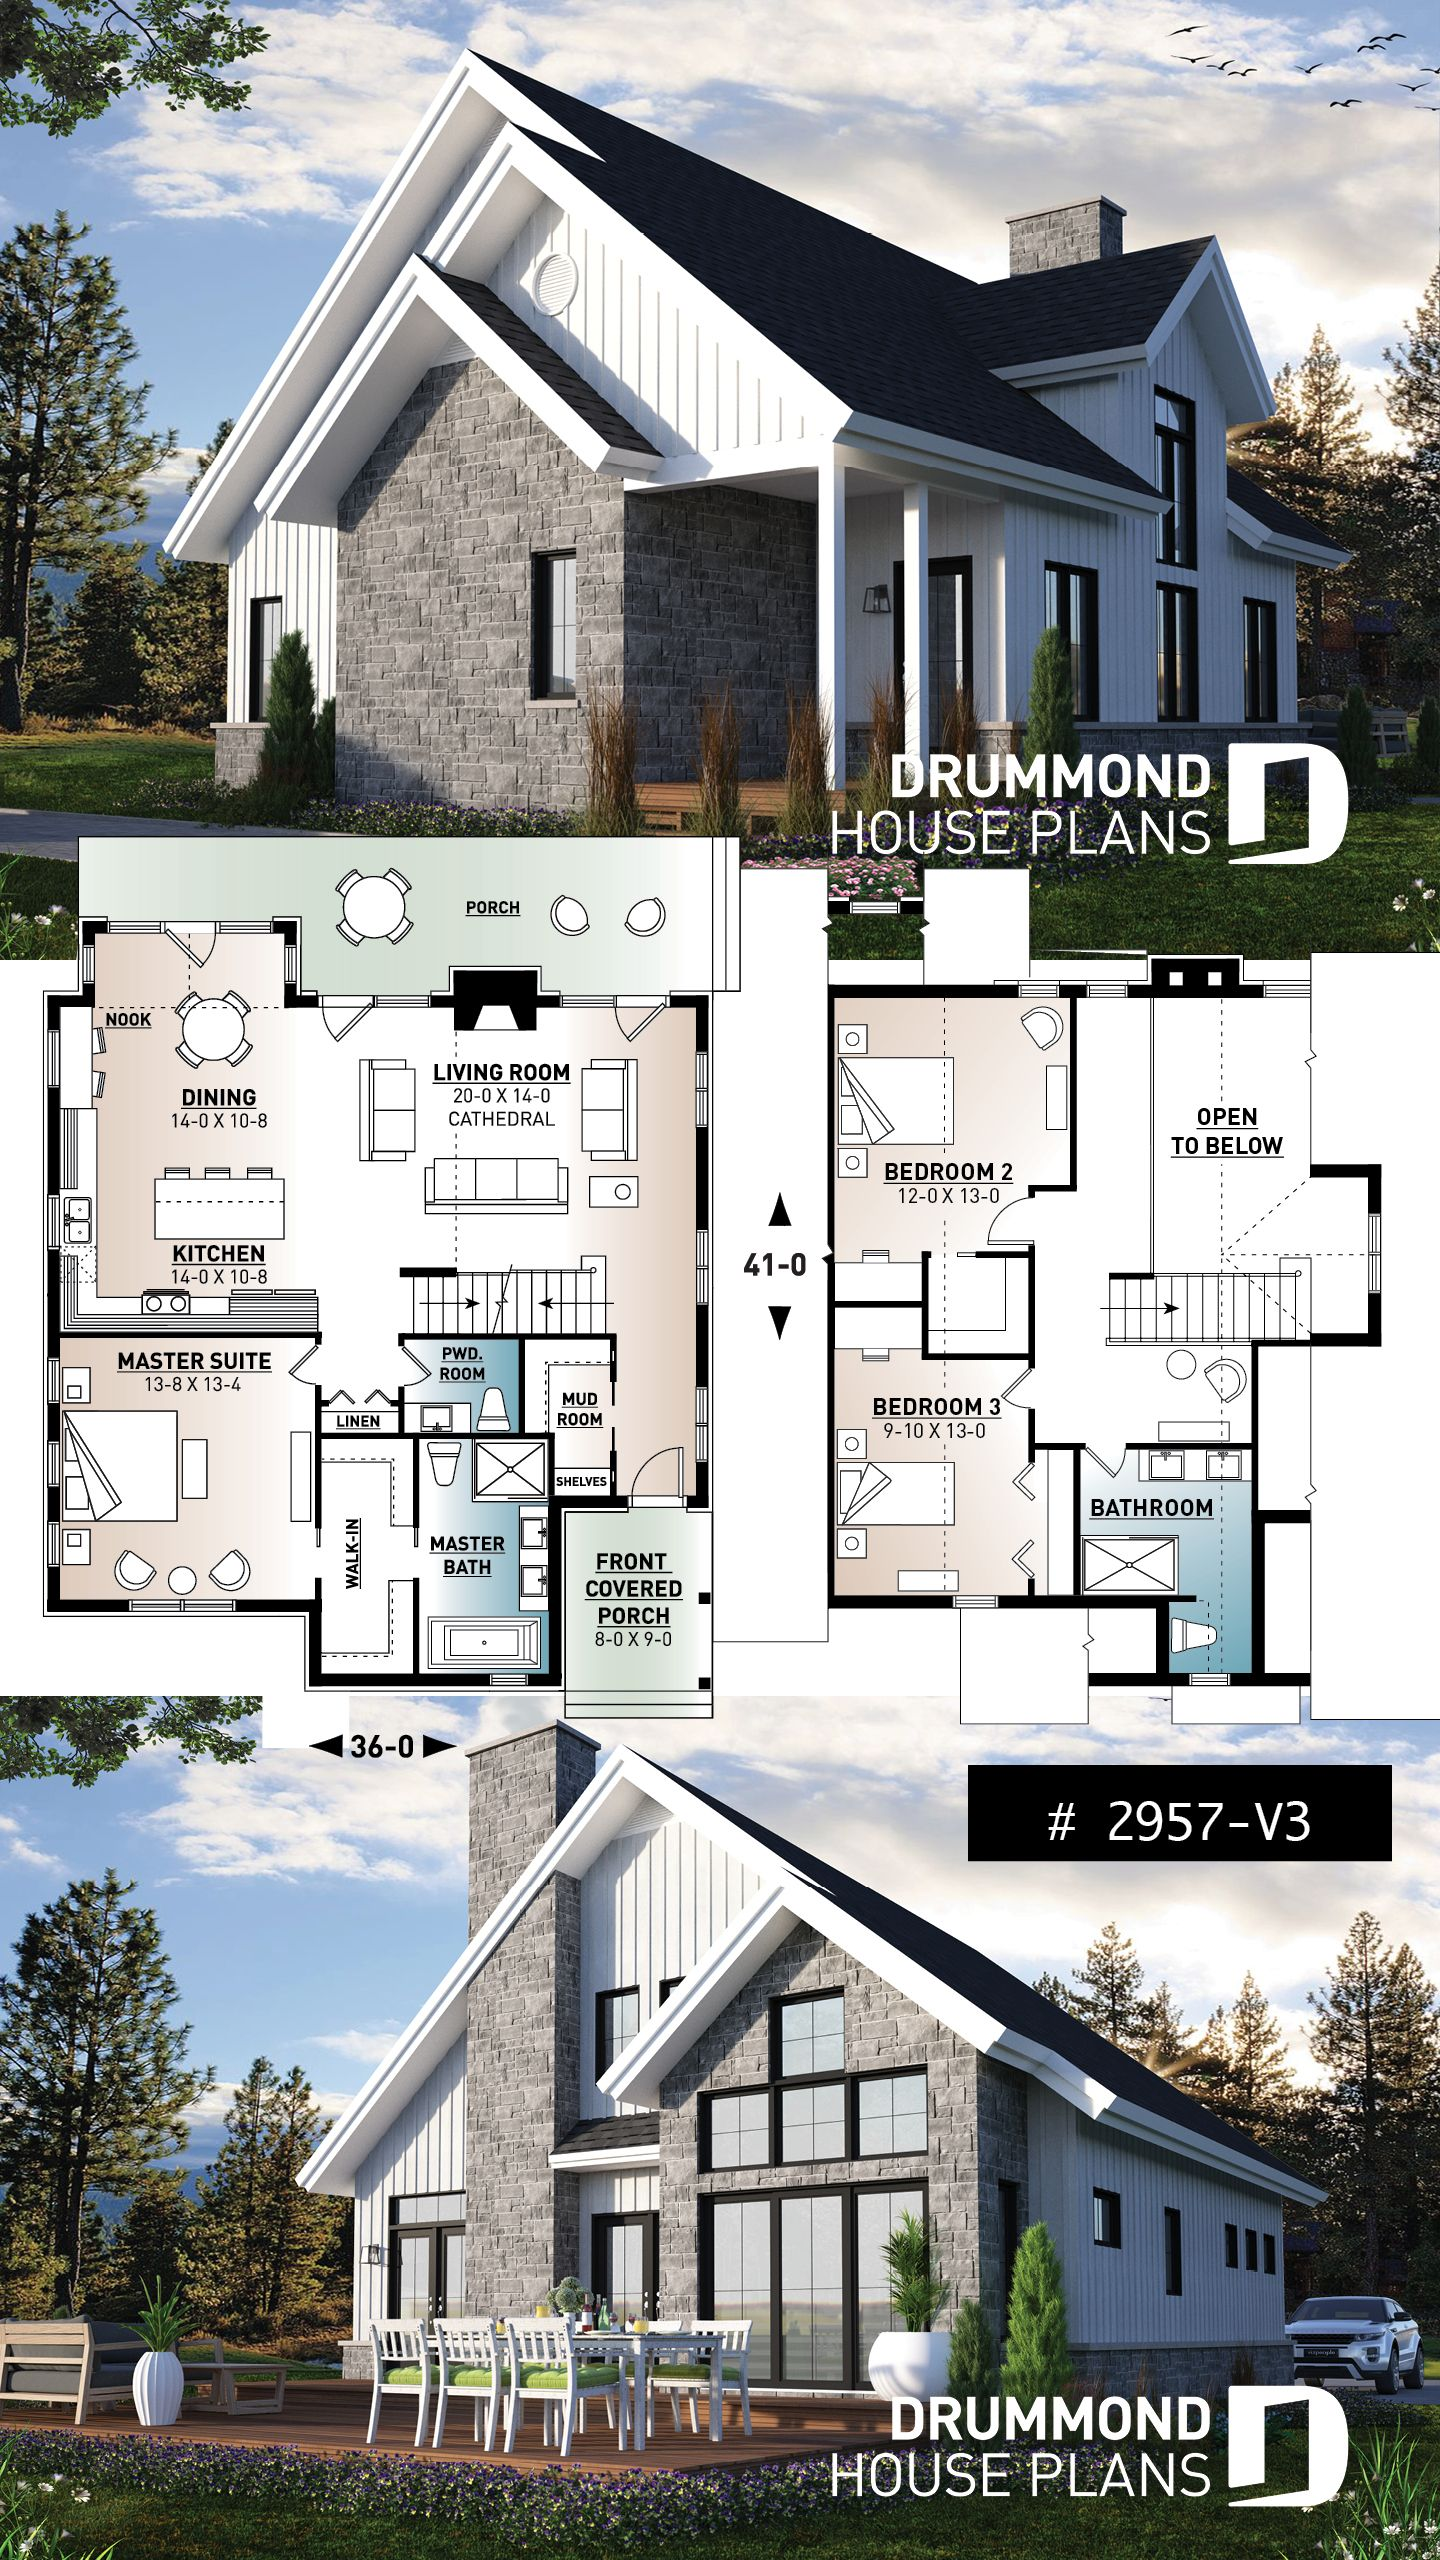 3 bedroom Mountain style house plan, with panoramic view, cathedral on apartment in law house plans, mason house plans, house with garage apartment plans, 20 x 38 house plans, bungalow house plans, sheridan house plans, jackson house plans, hammond house plans, hillsdale house plans, mediterranean style house floor plans, sterling house plans, with in law suite house plans, crawford house plans, 2014 award-winning house plans, for senior living house plans, malta house plans, cottage house plans, vastu east facing house plans, boulder house plans, birchwood house plans,